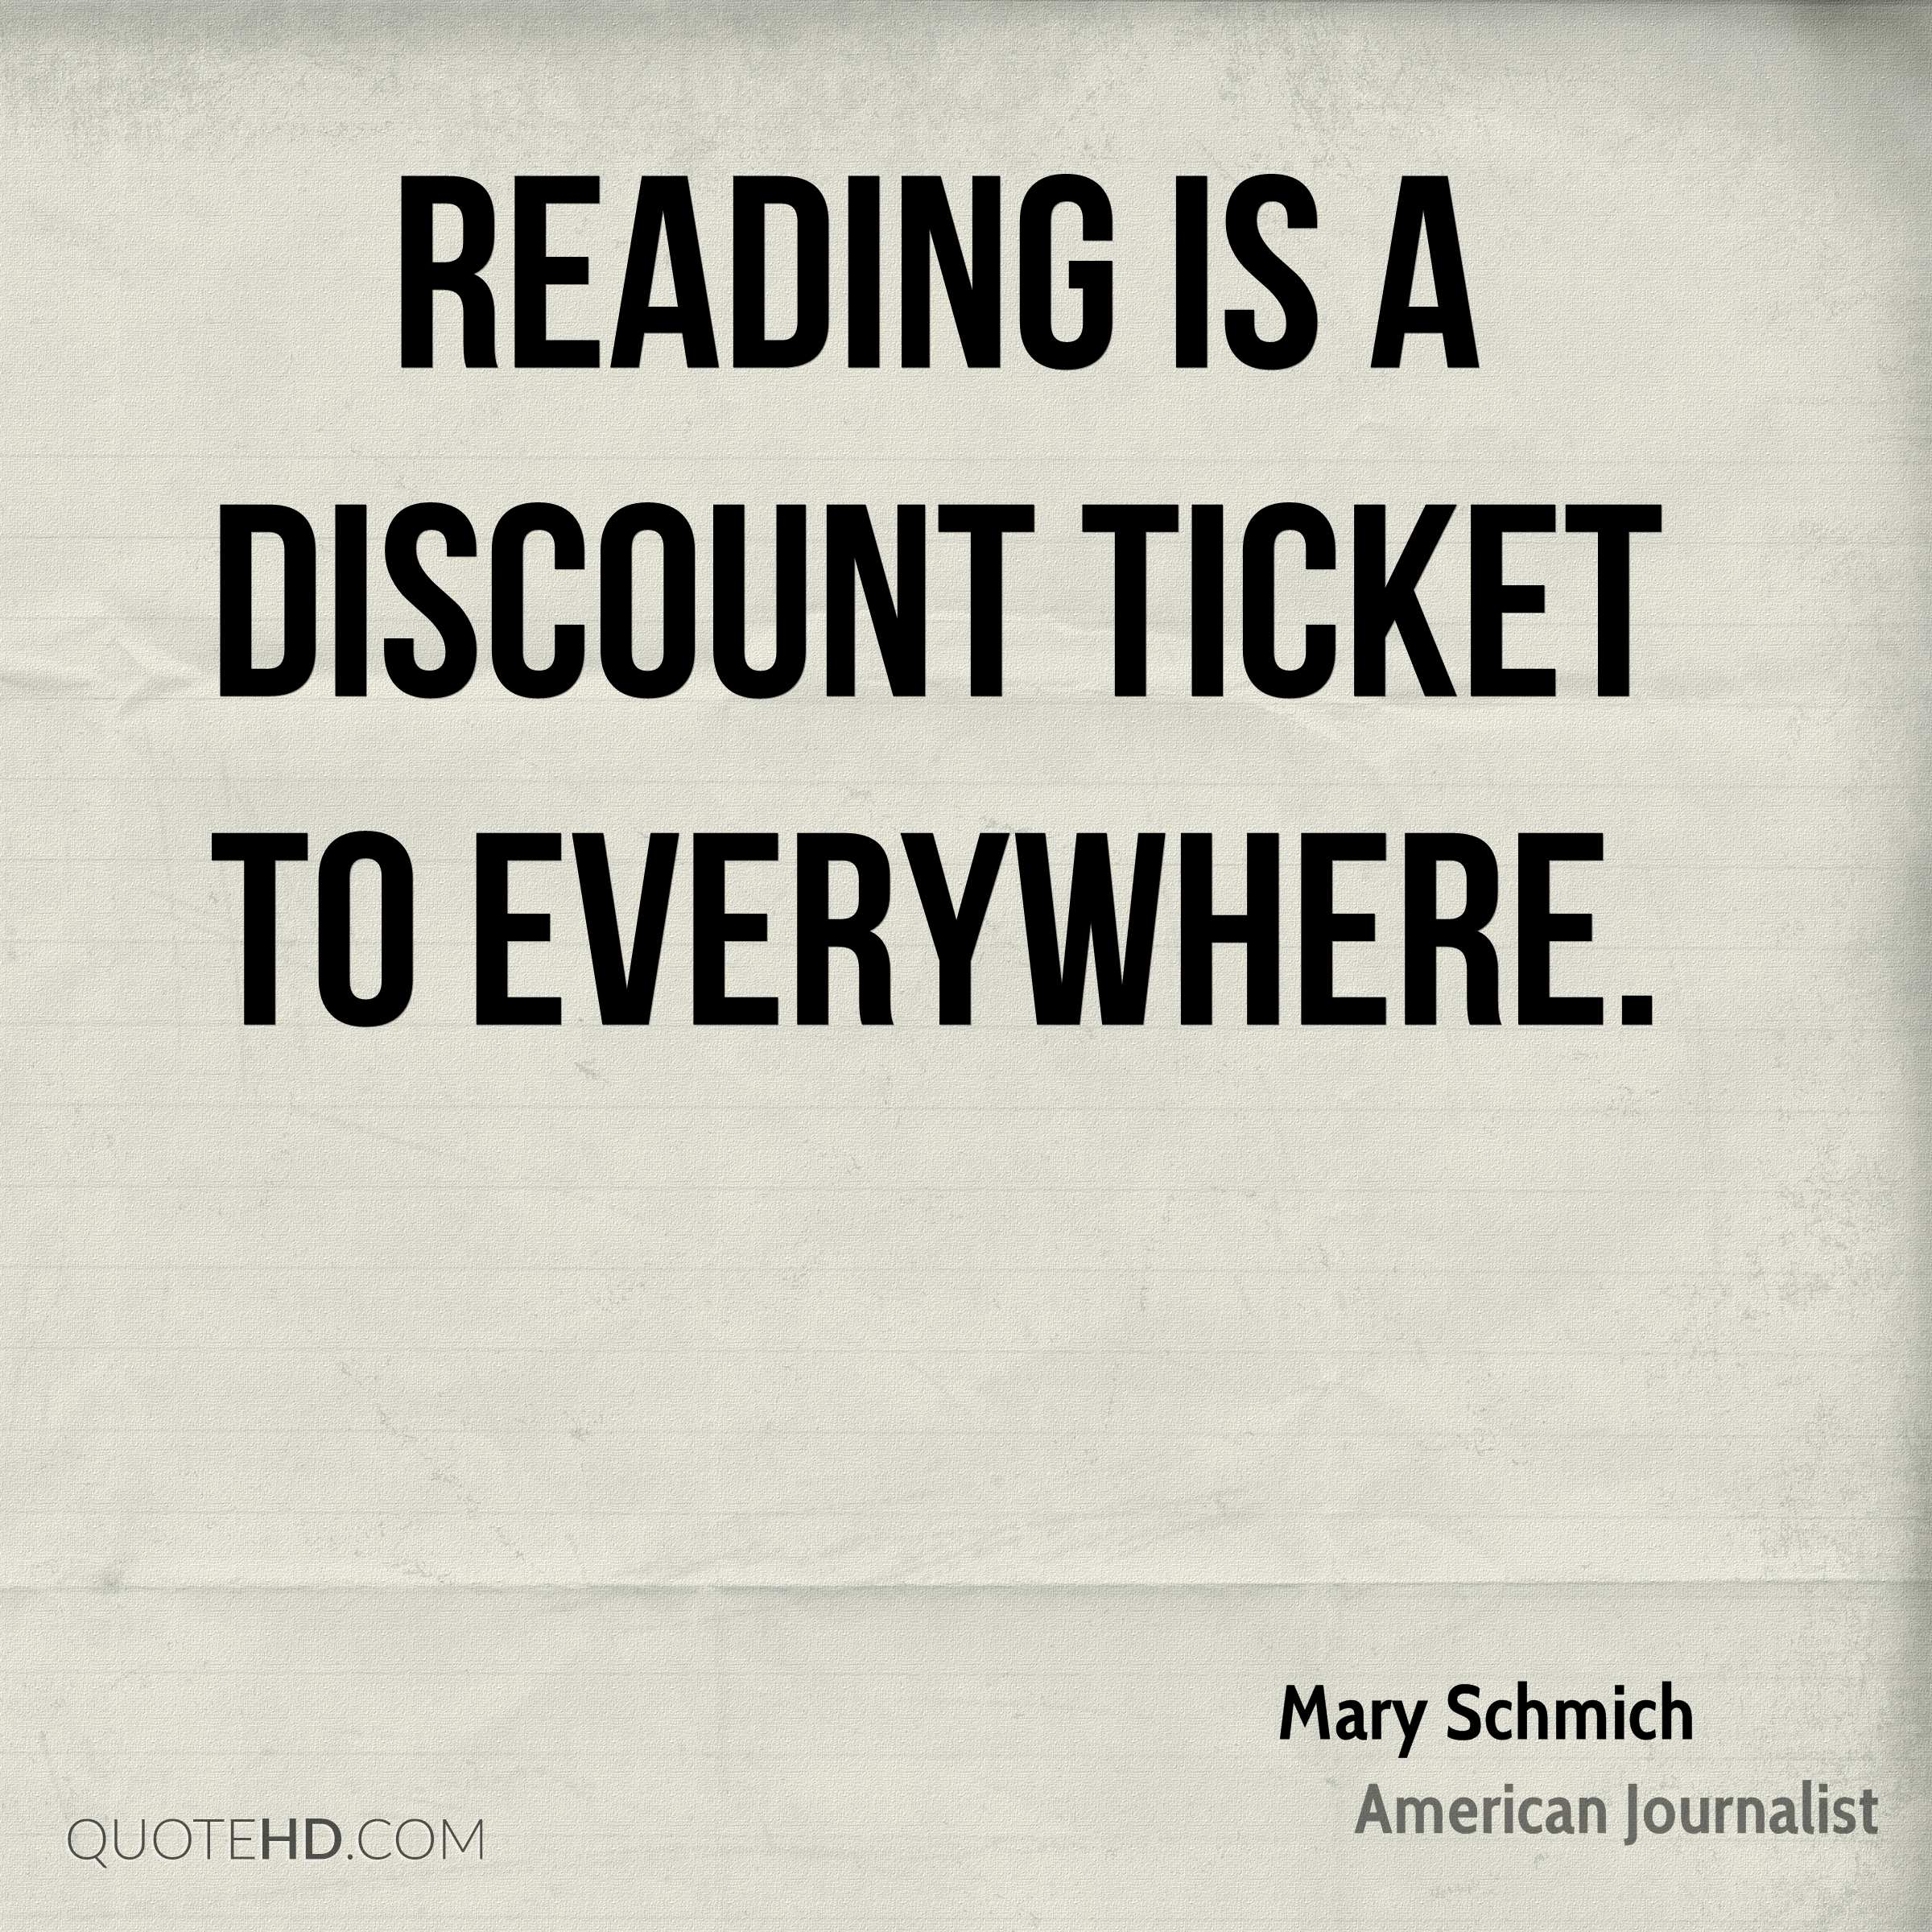 Reading is a discount ticket to everywhere.